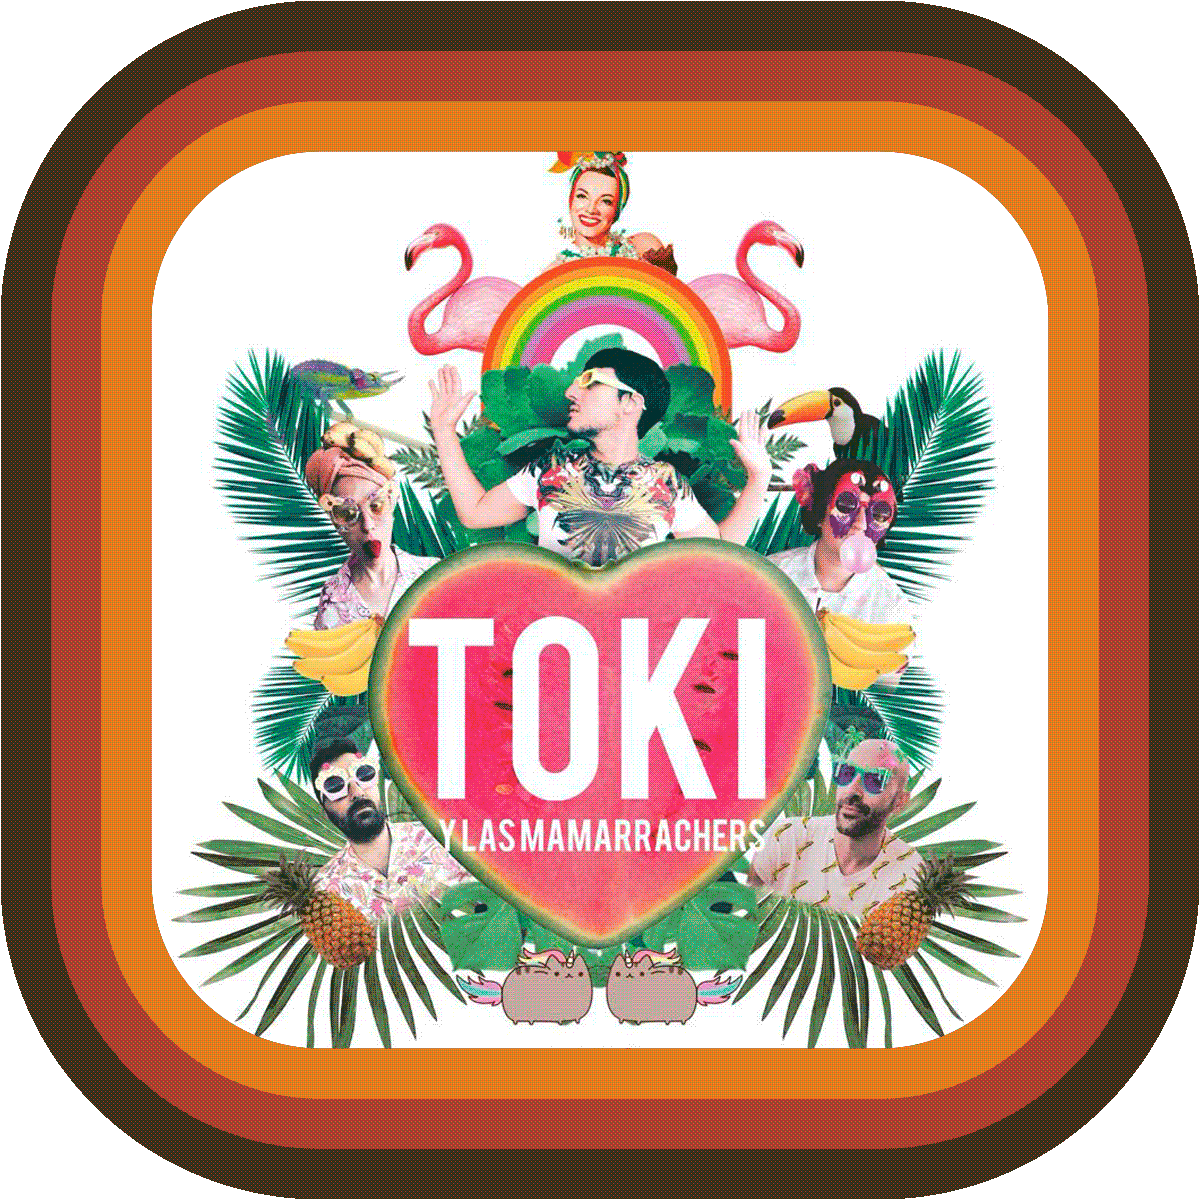 Tokio DJ & The Mamarrachers